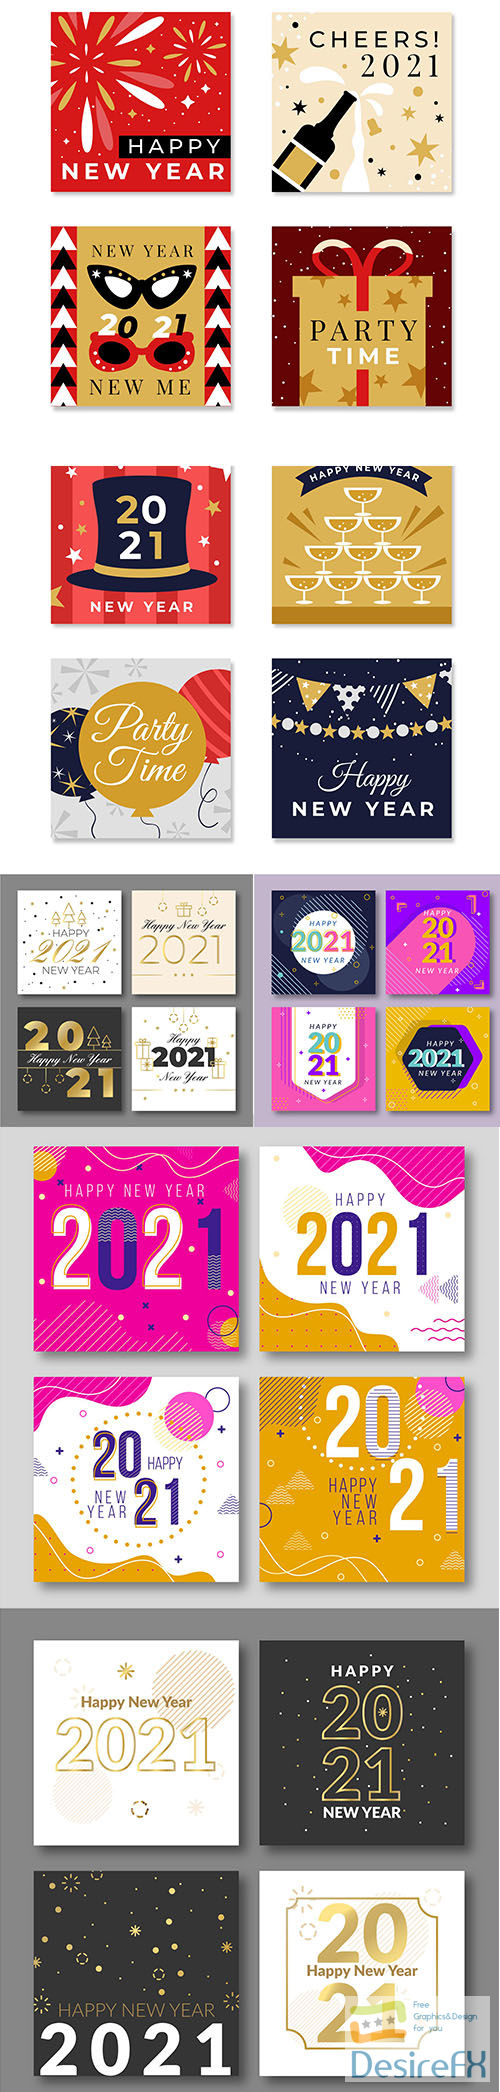 Abstract new year 2021 cards